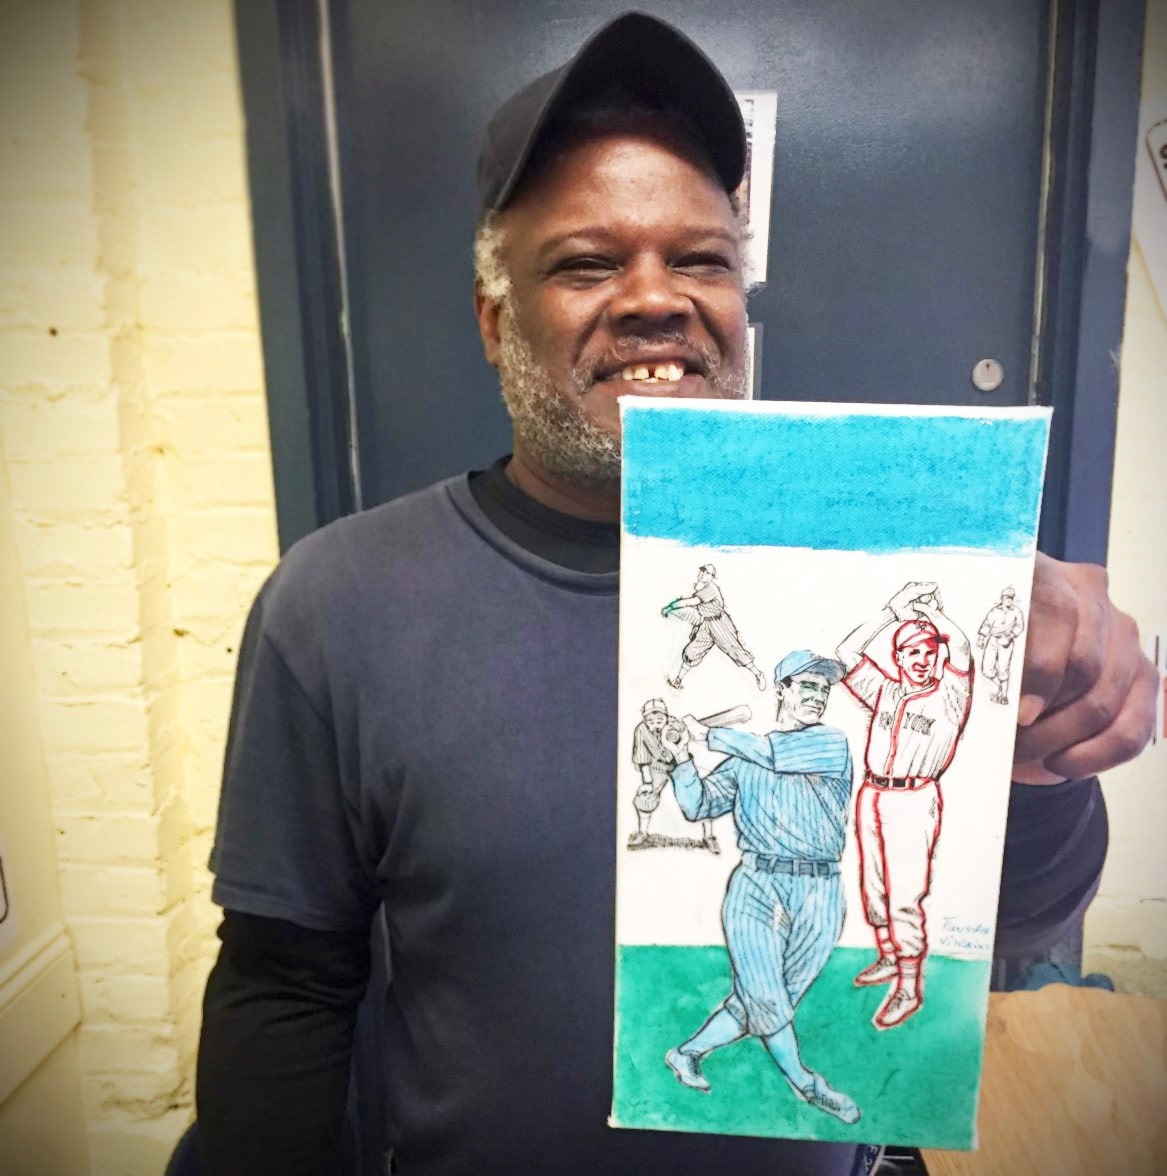 Artist Fausto Vizcaino holding a painting